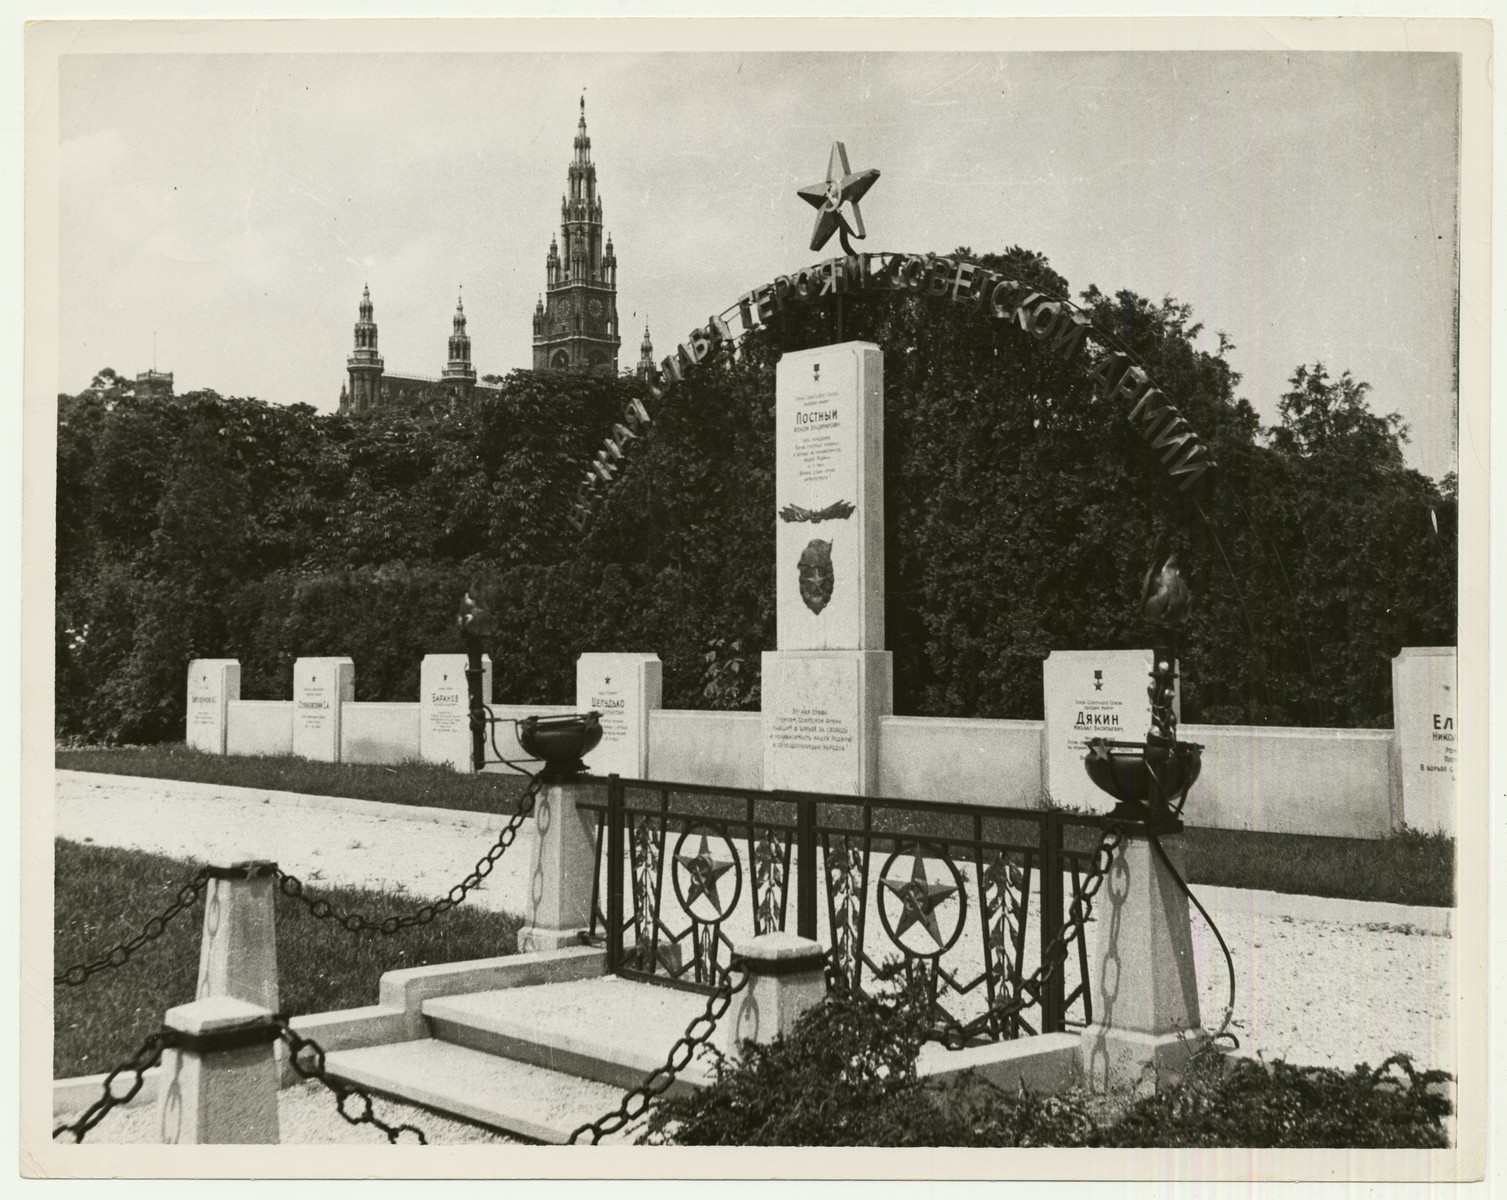 """View of the markers for Russian graves in Vienna, Austria outside City Hall.  The handwritten caption on the back of the photograph reads: """"Russian graves in Vienna, City Hall in background."""""""